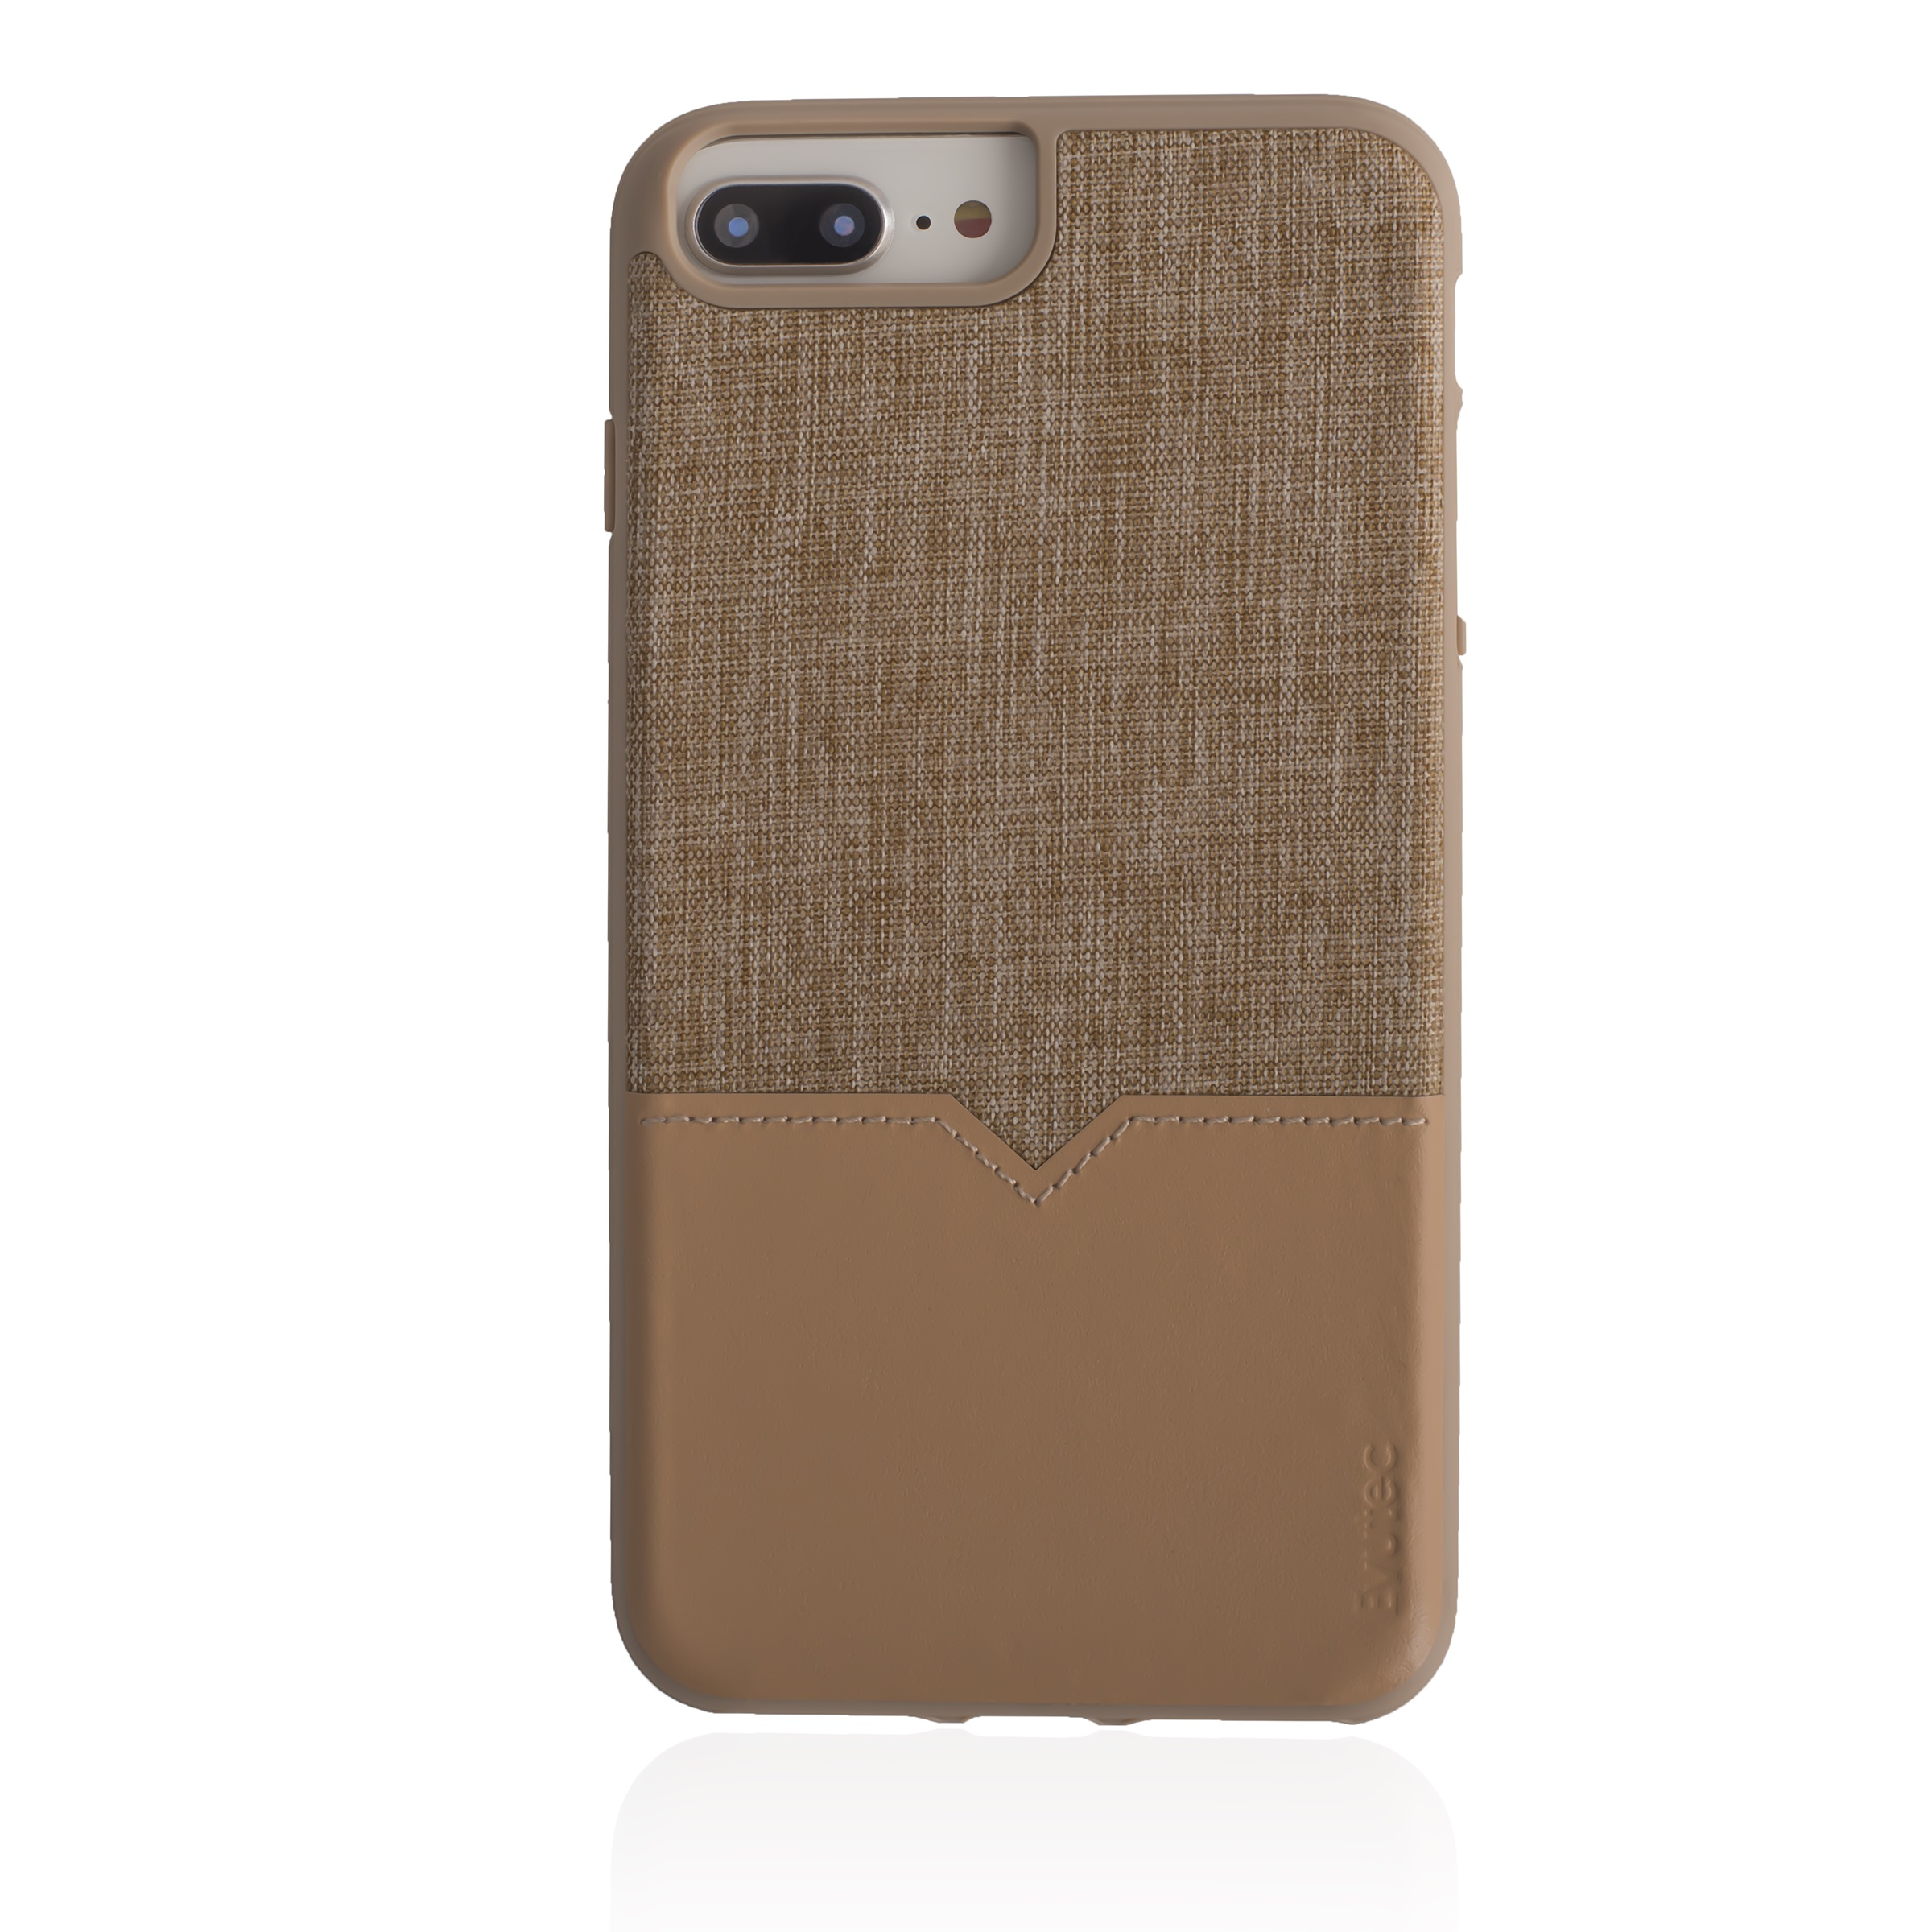 EVUTEC NH68PMTD01 TAN IPHONE CASE FOR 6 6S 7 7S & 8 PLUS WITH